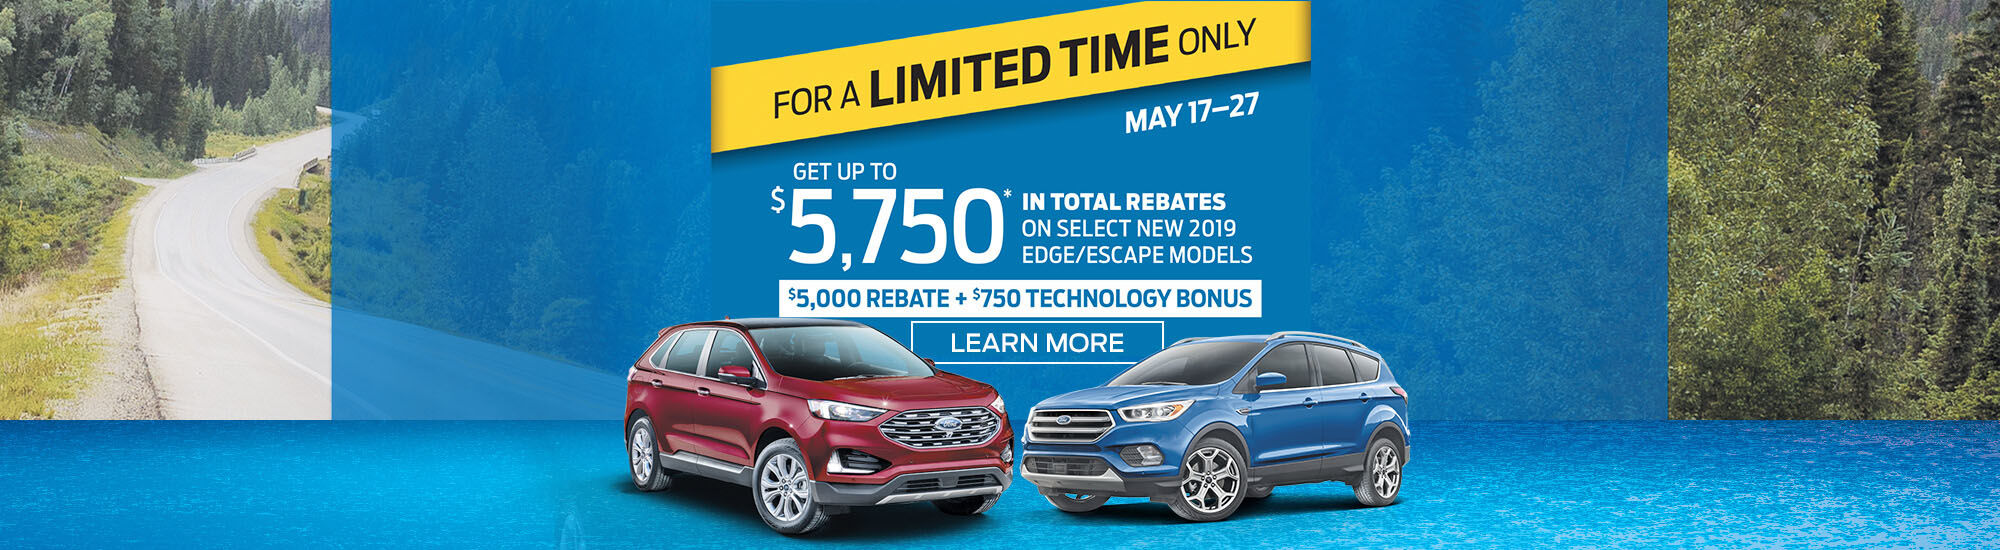 2019 Edge and Escape Ford offer